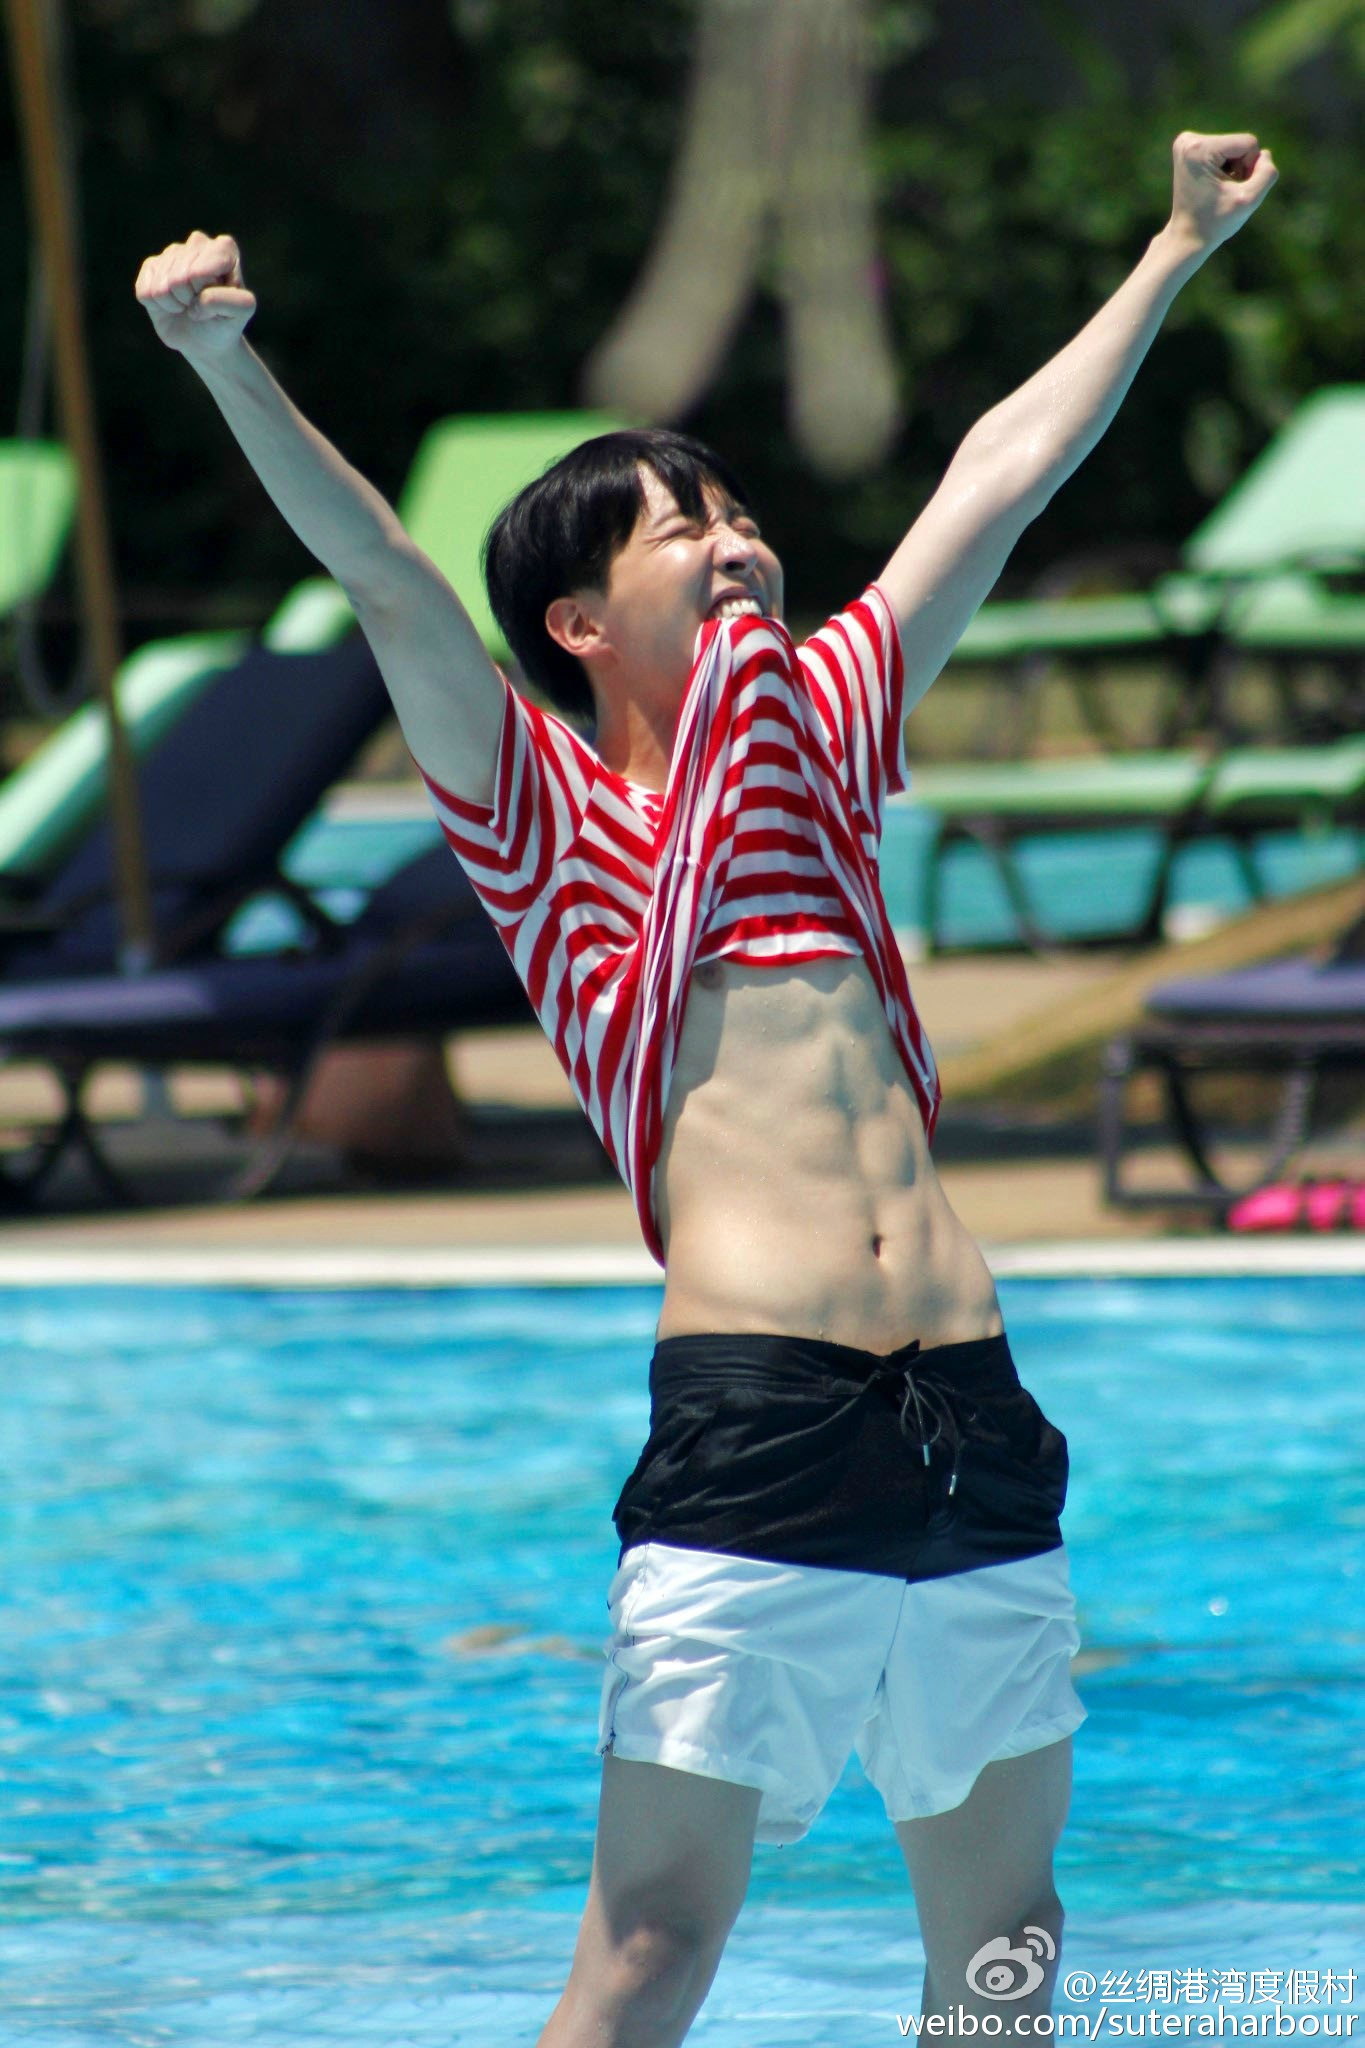 21 Times Bts Revealed Their Abs